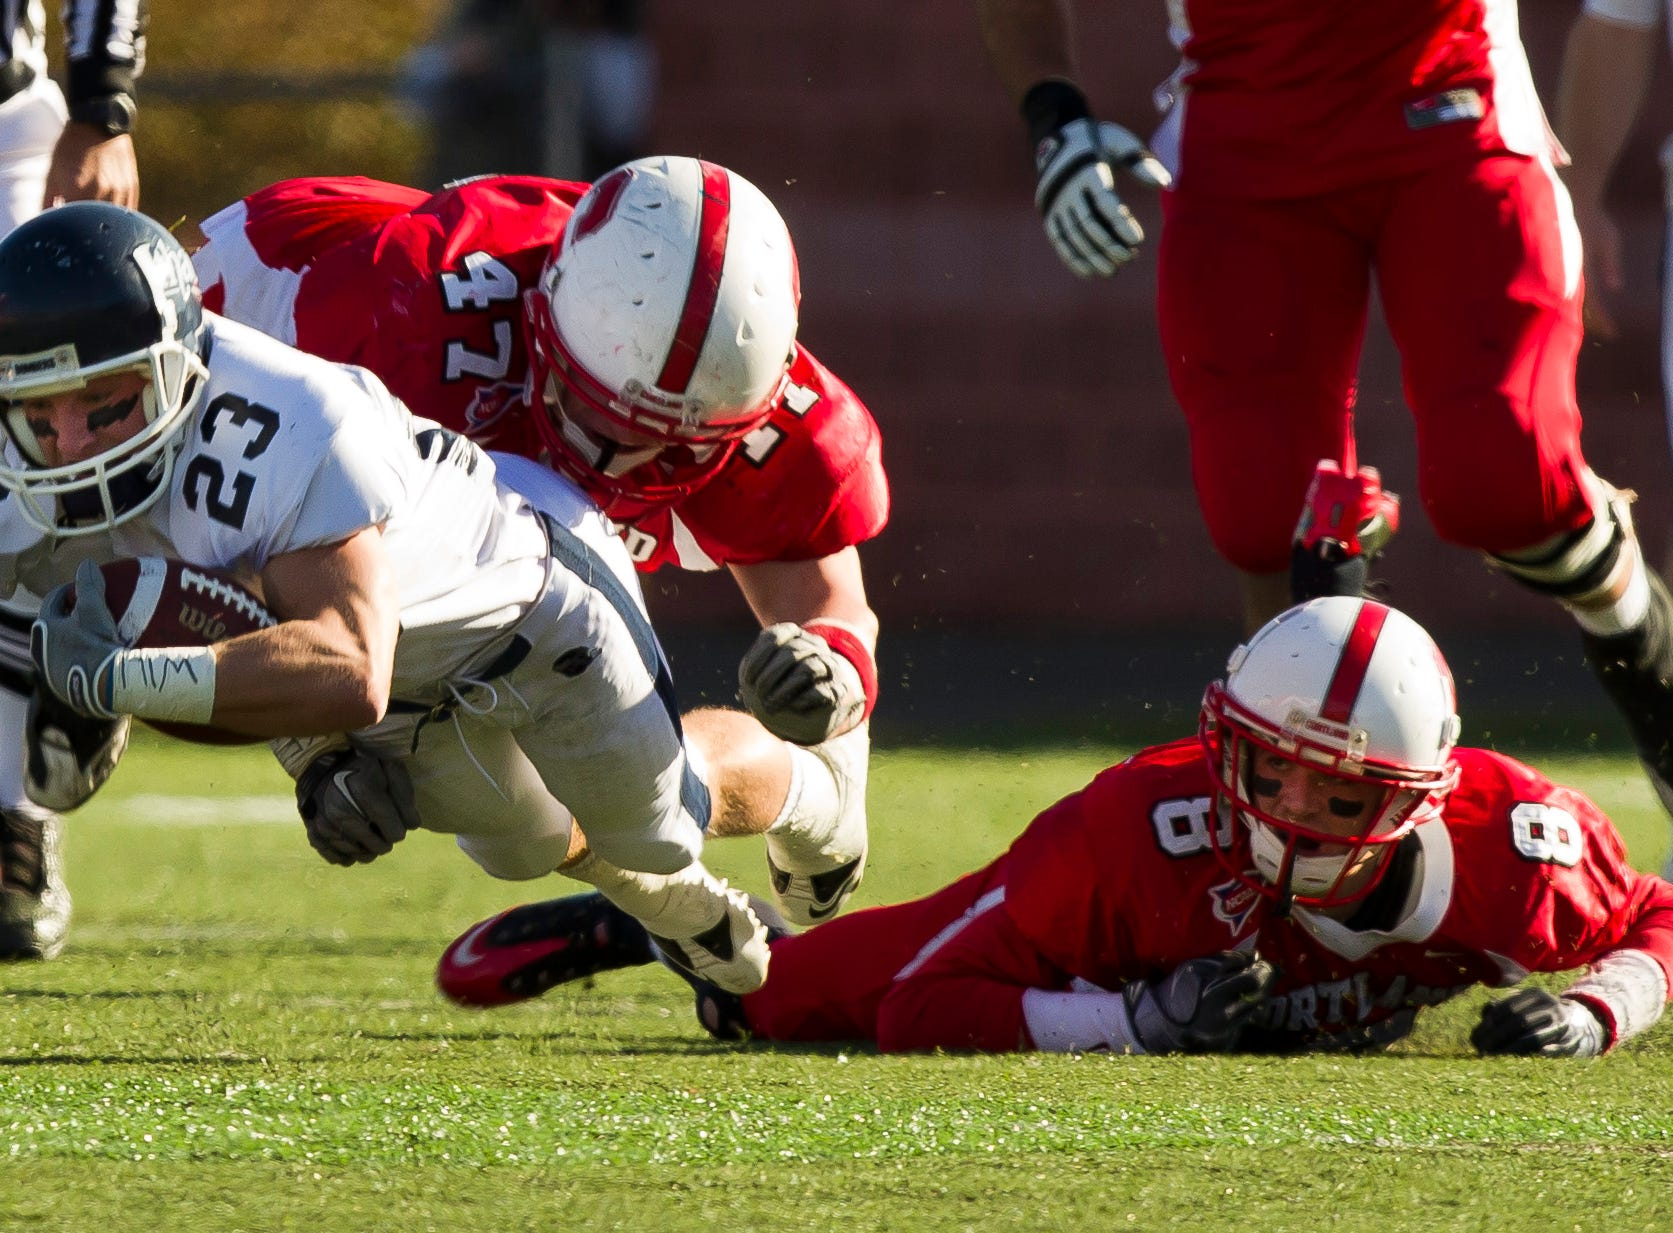 2010: Ithaca College's Dan Ruffrage is tackled by SUNY Cortland's Bill Smith as Cortland's Phil Bossman looks on during Saturday's Cortaca Jug in Cortland.